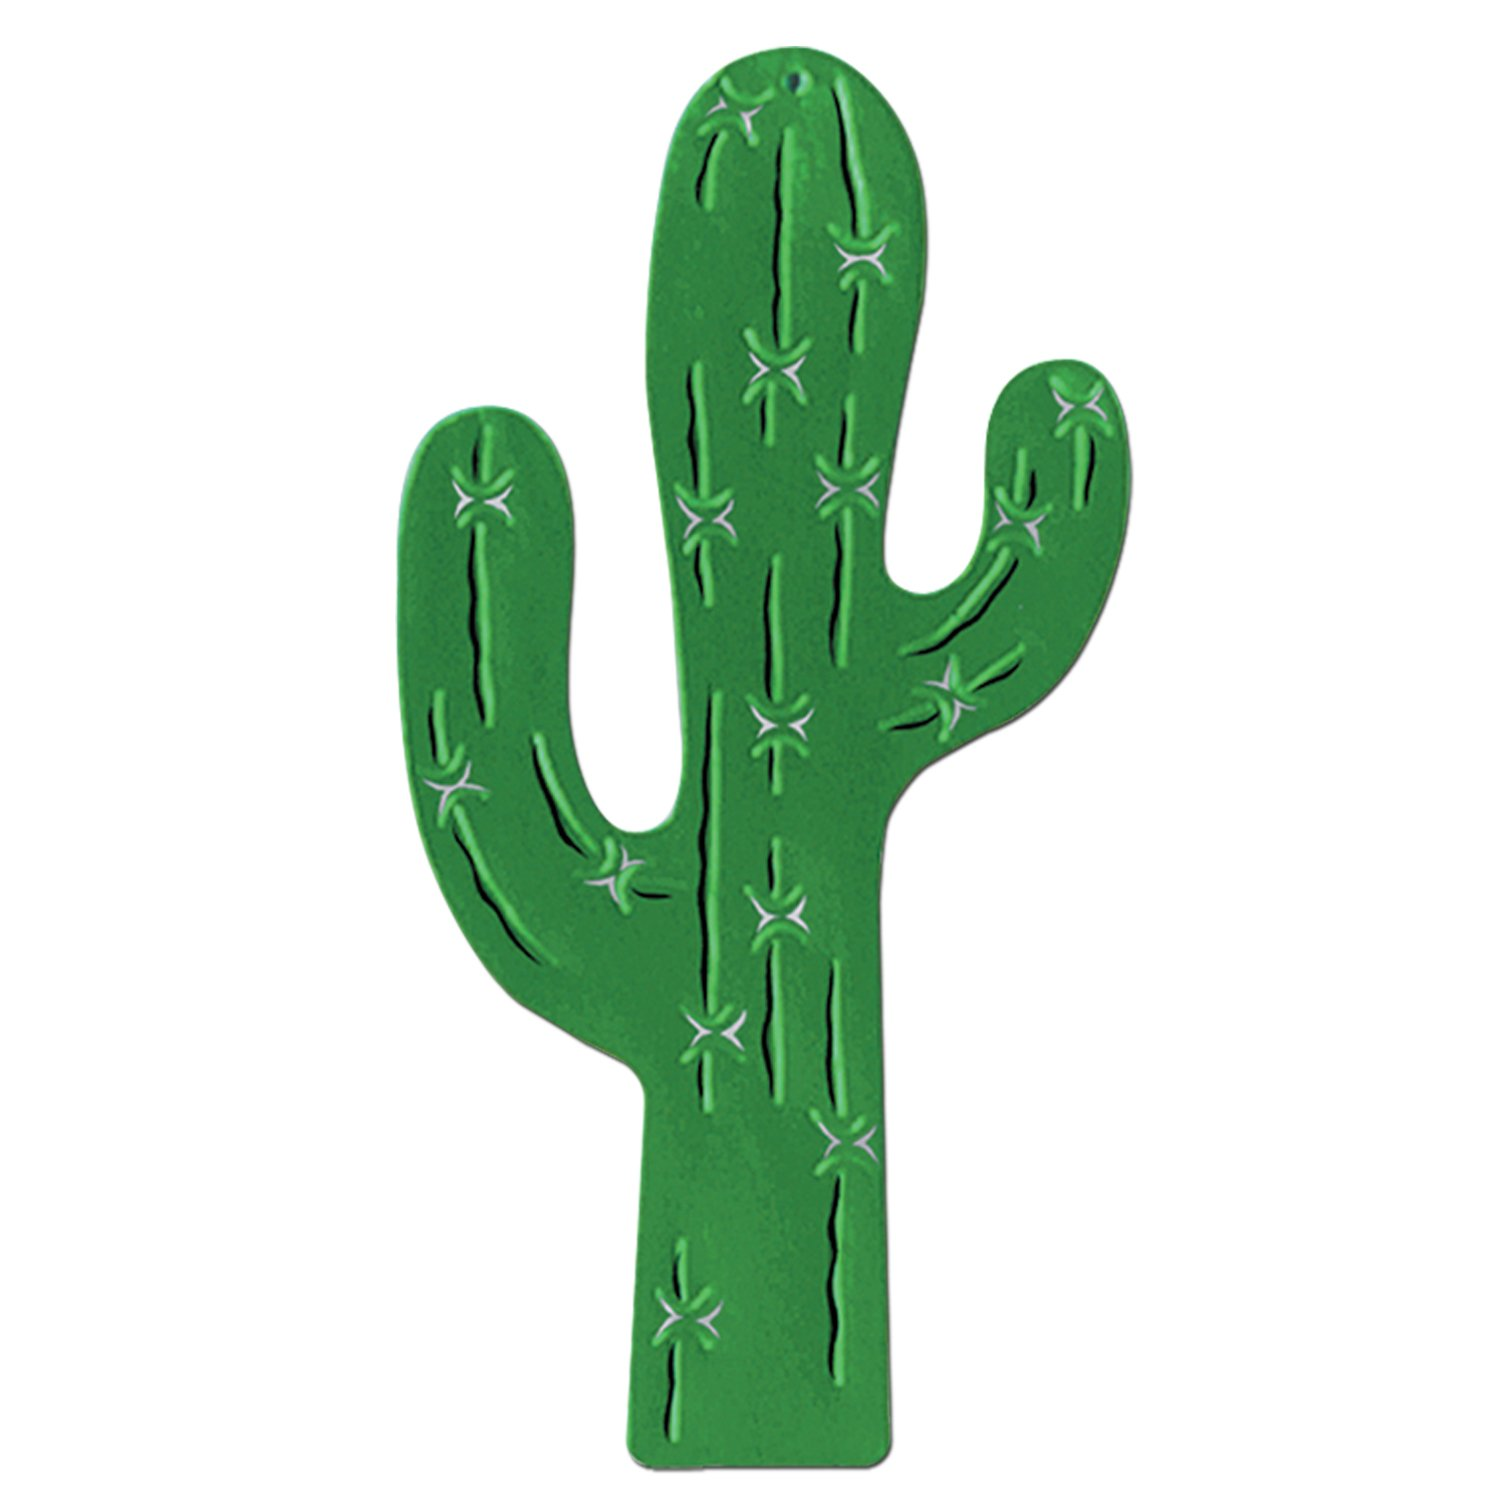 1500x1500 24ct) Beistle Western Party Foil Cactus Silhouette